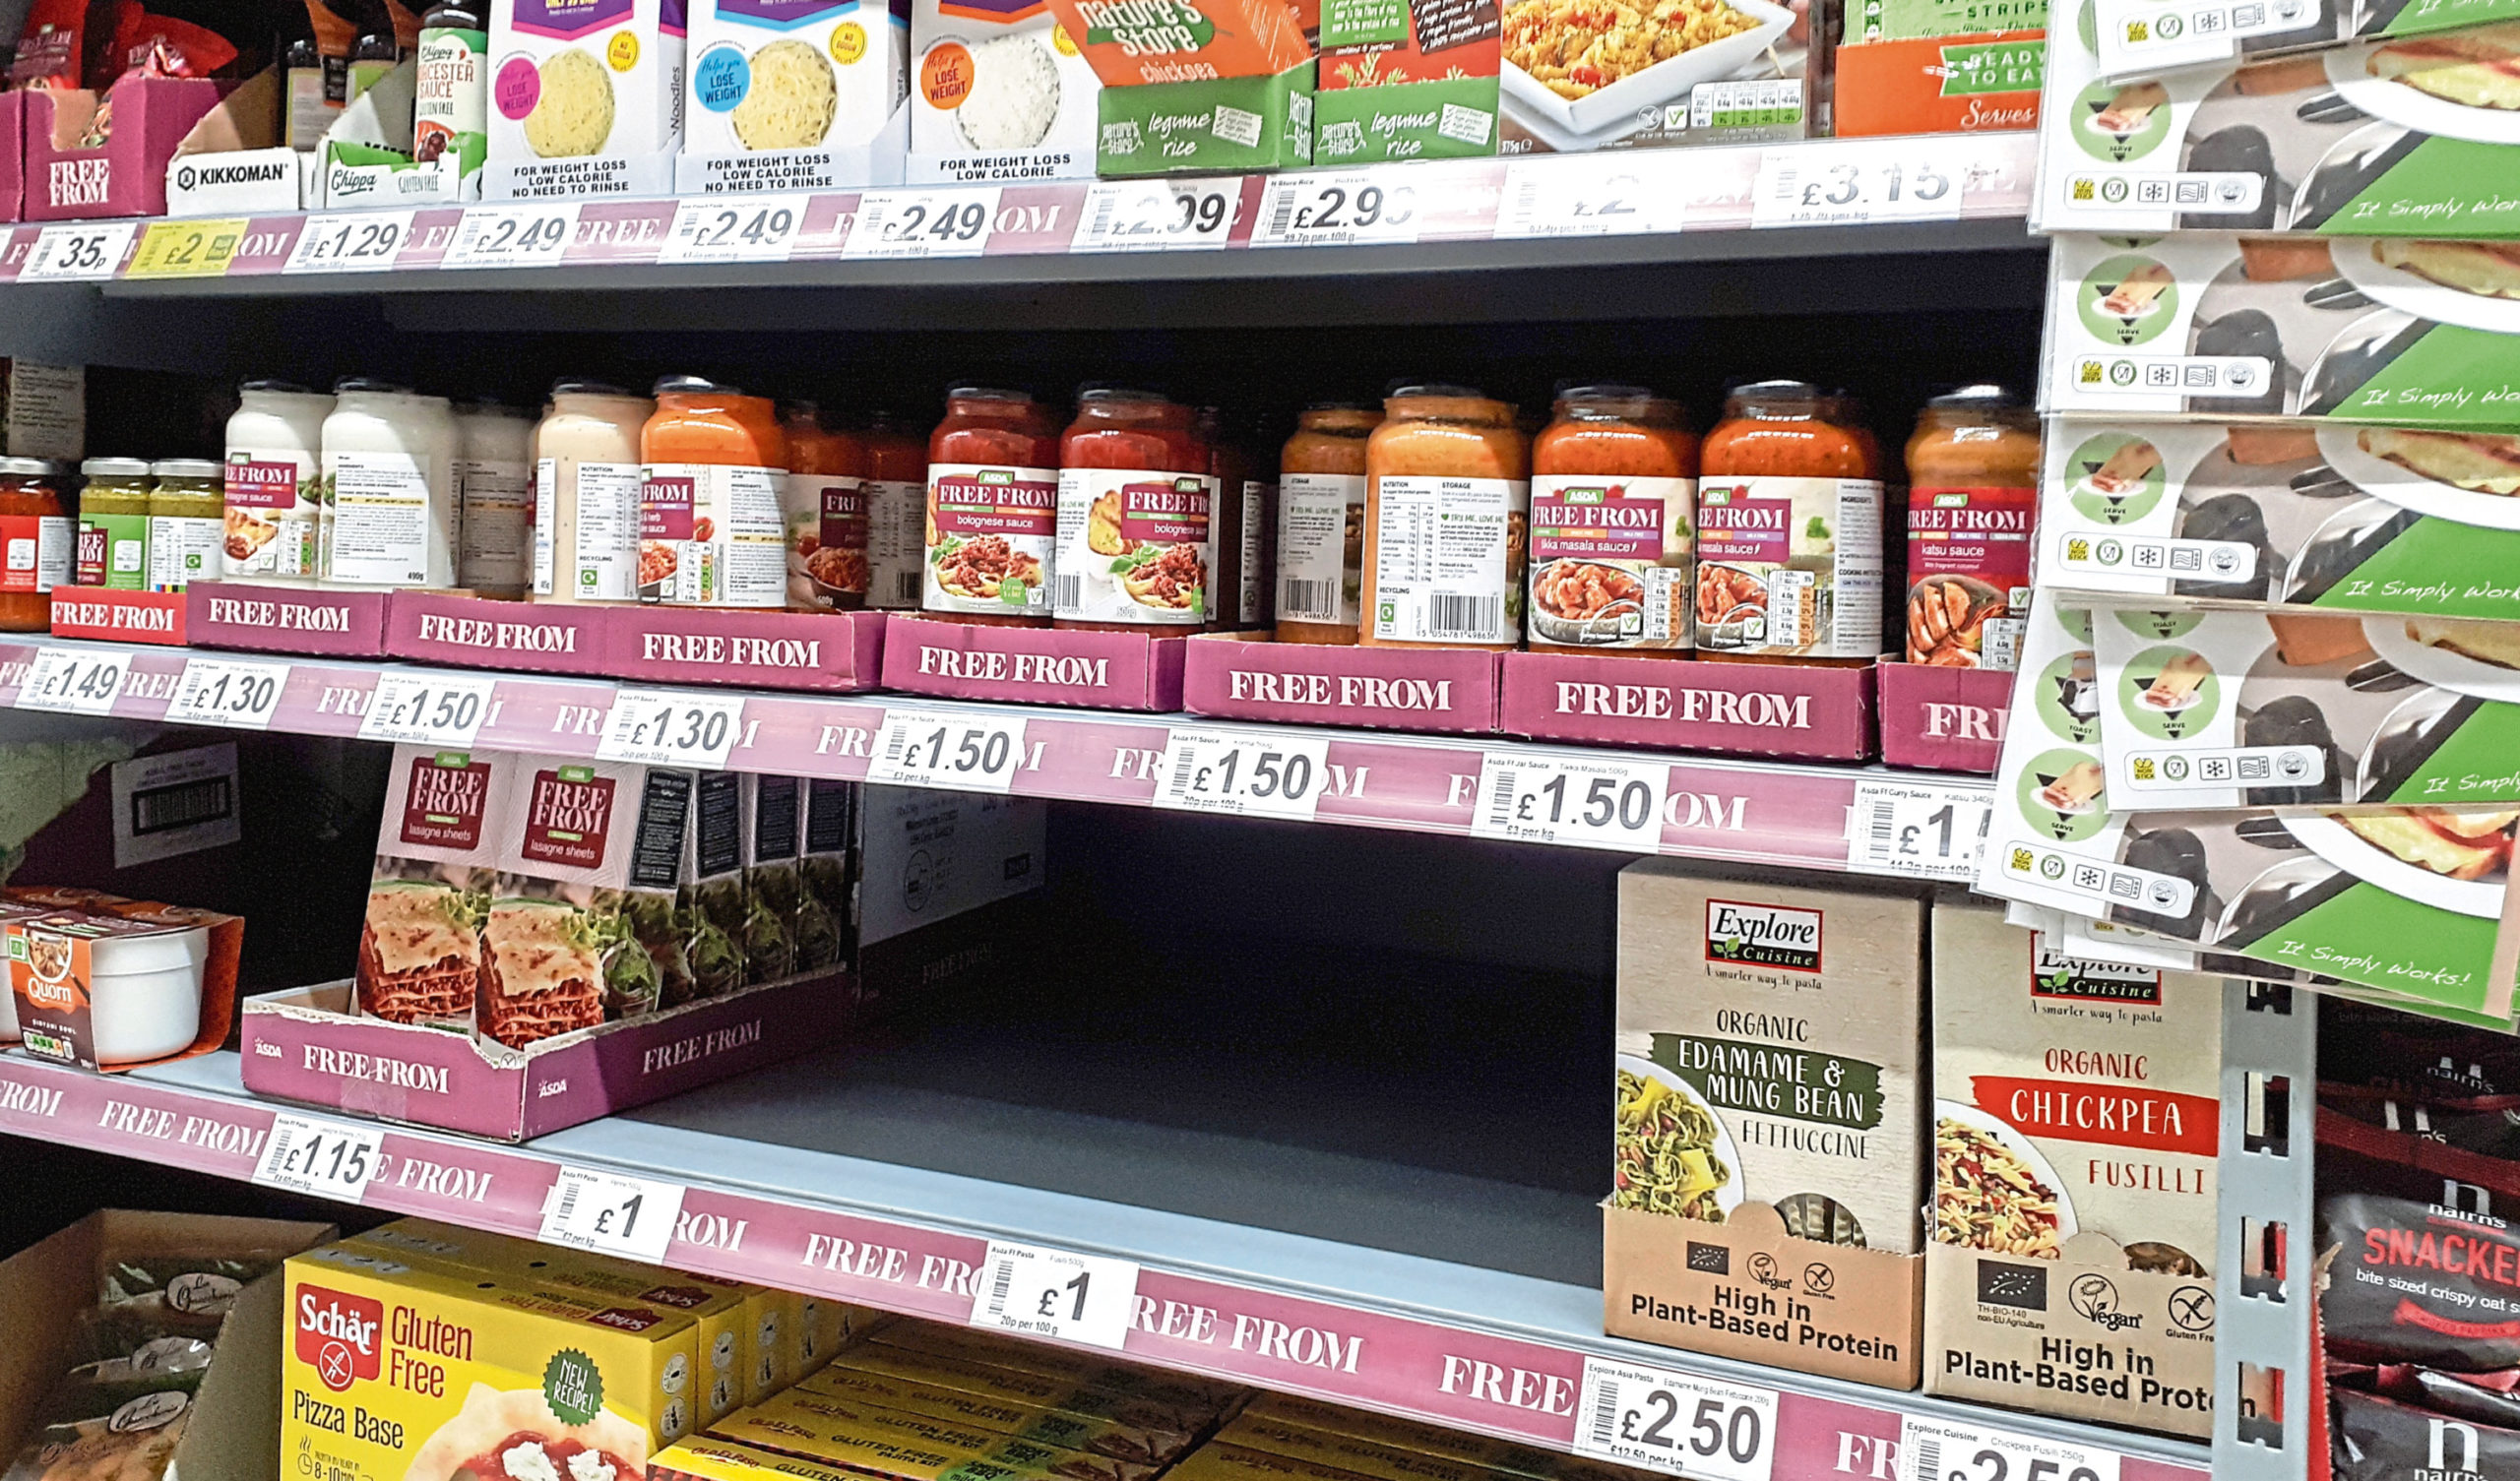 Empty spaces in a supermarket's free-from section